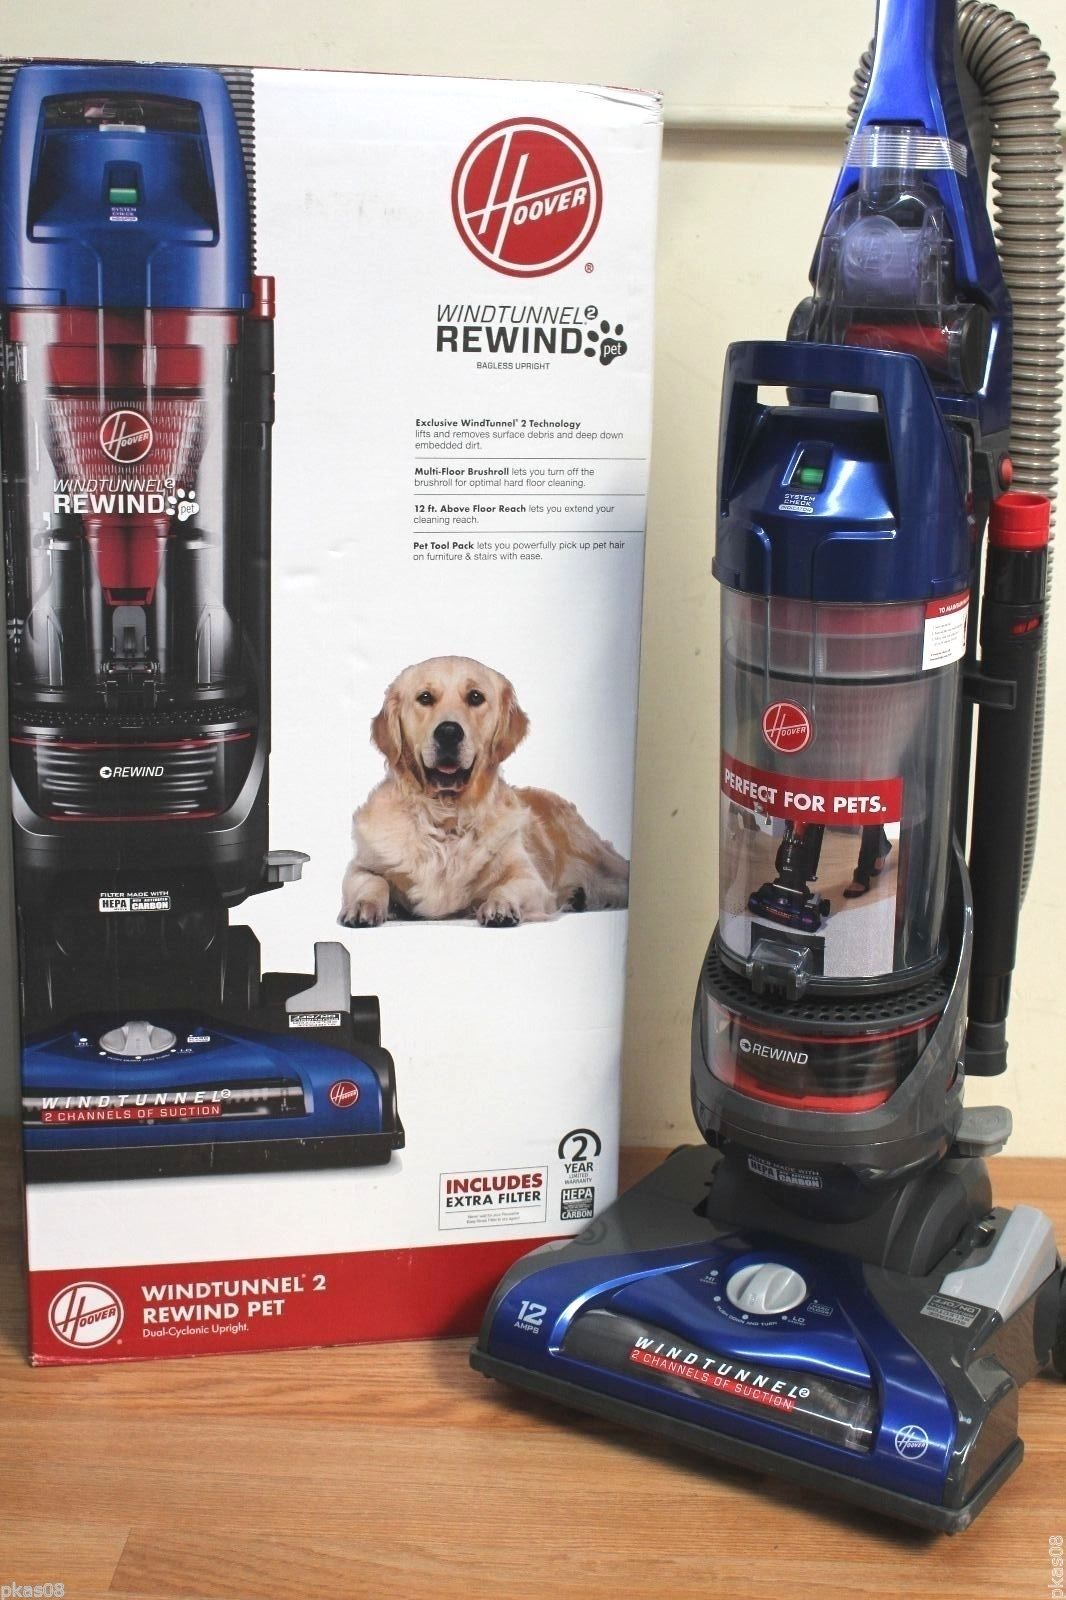 Hoover WindTunnel 2 Rewind Bagless Upright Vacuum UH71215 With All